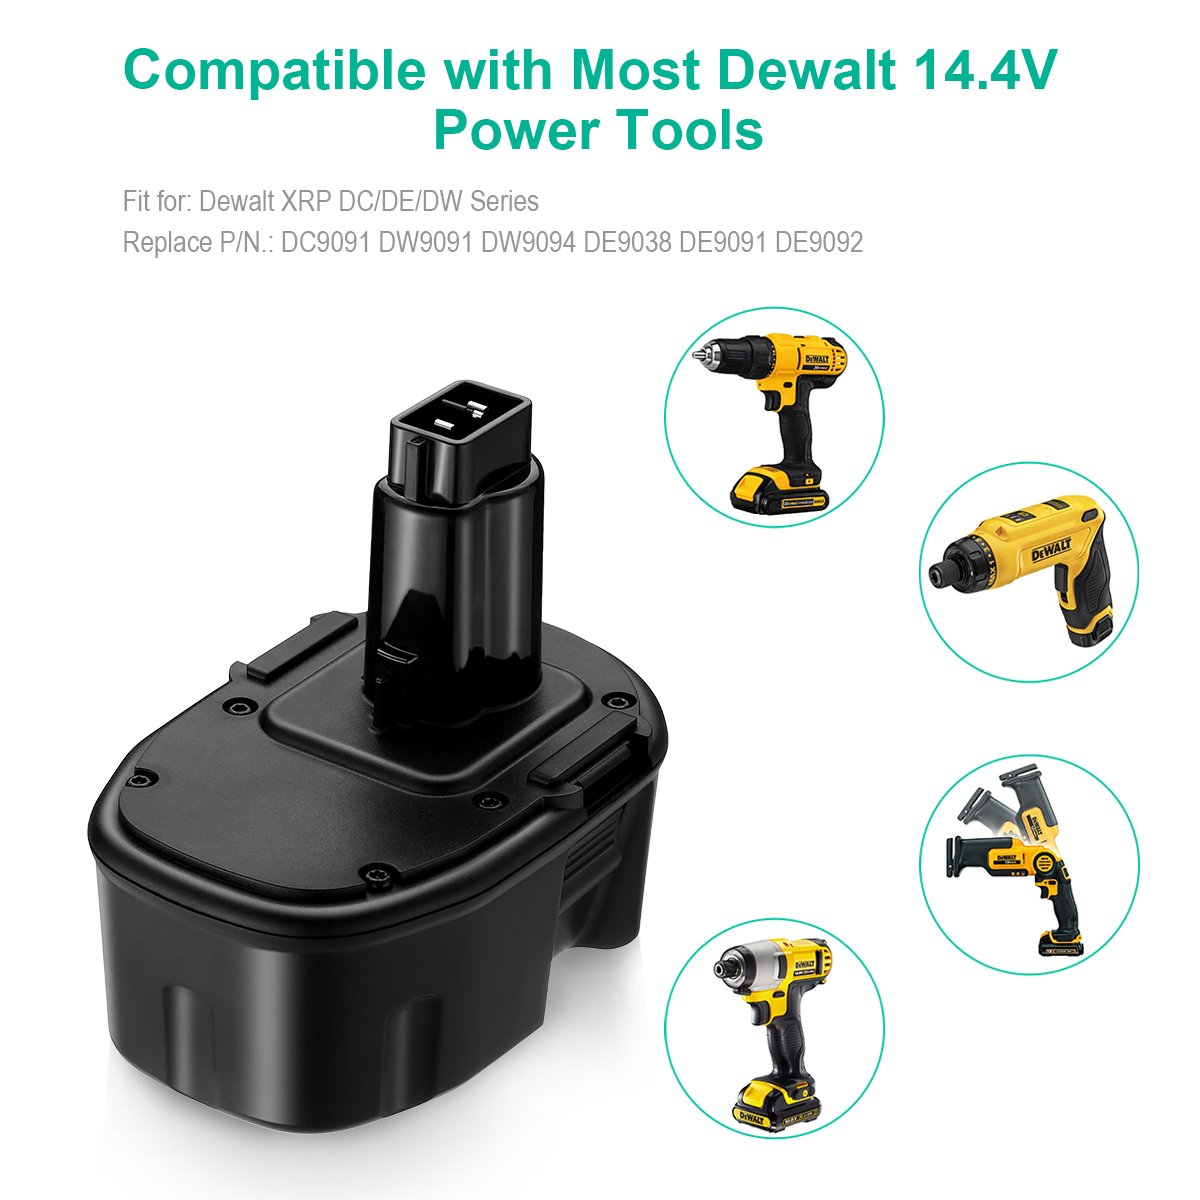 FirstPower 3.5AH 14.4V XRP Battery Replacement for Dewalt DC9091 DW9091 DW9094 DE9038 DE9091 DE9092 DEWALT Power Tool Battery DEWALT XRP DC DW DE Series ( 2 Pack ) by FirstPower (Image #4)